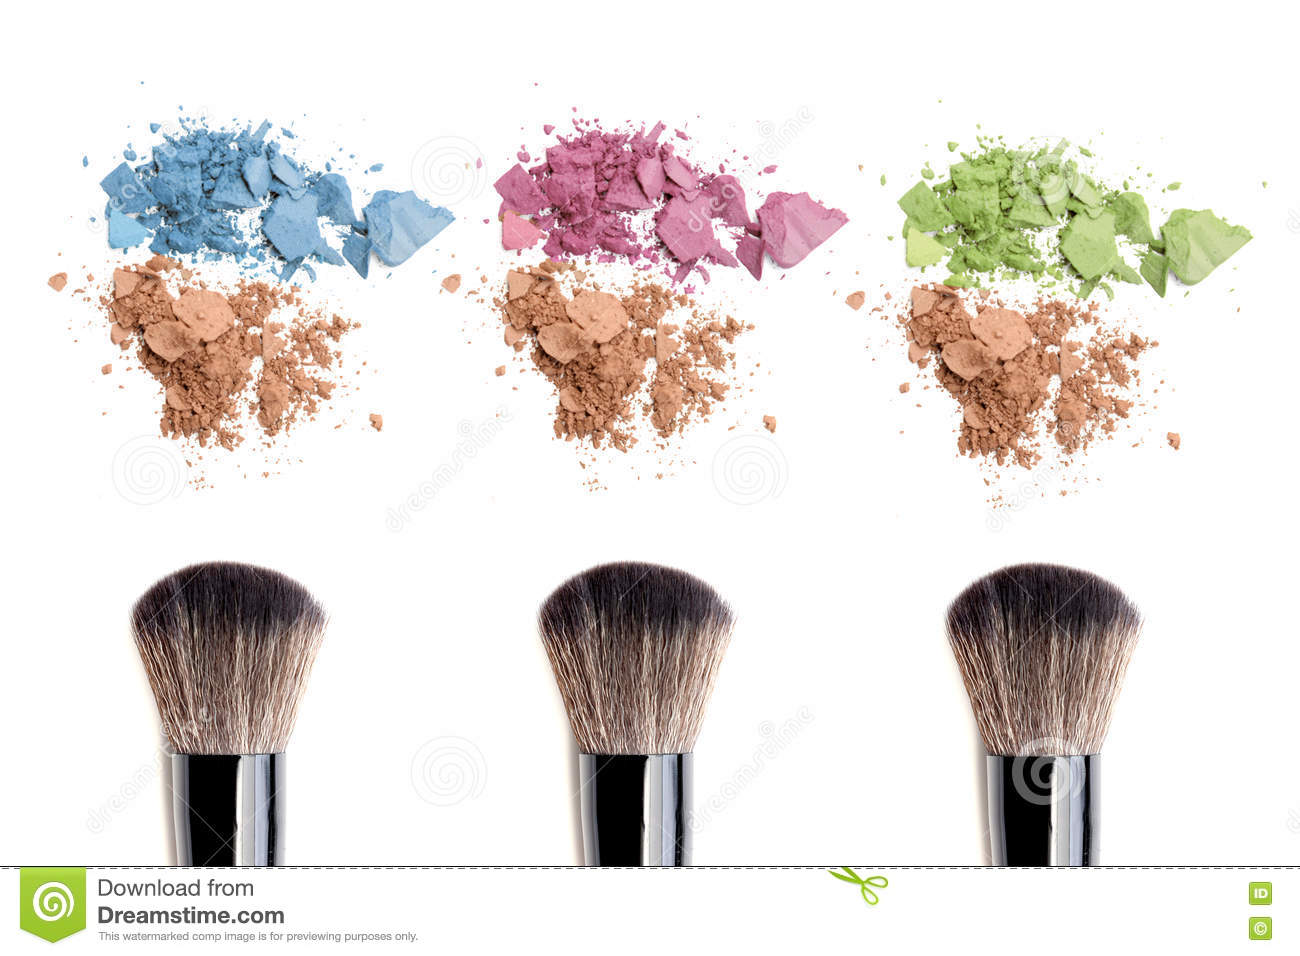 Make-up brush and color powder isolated on white background.